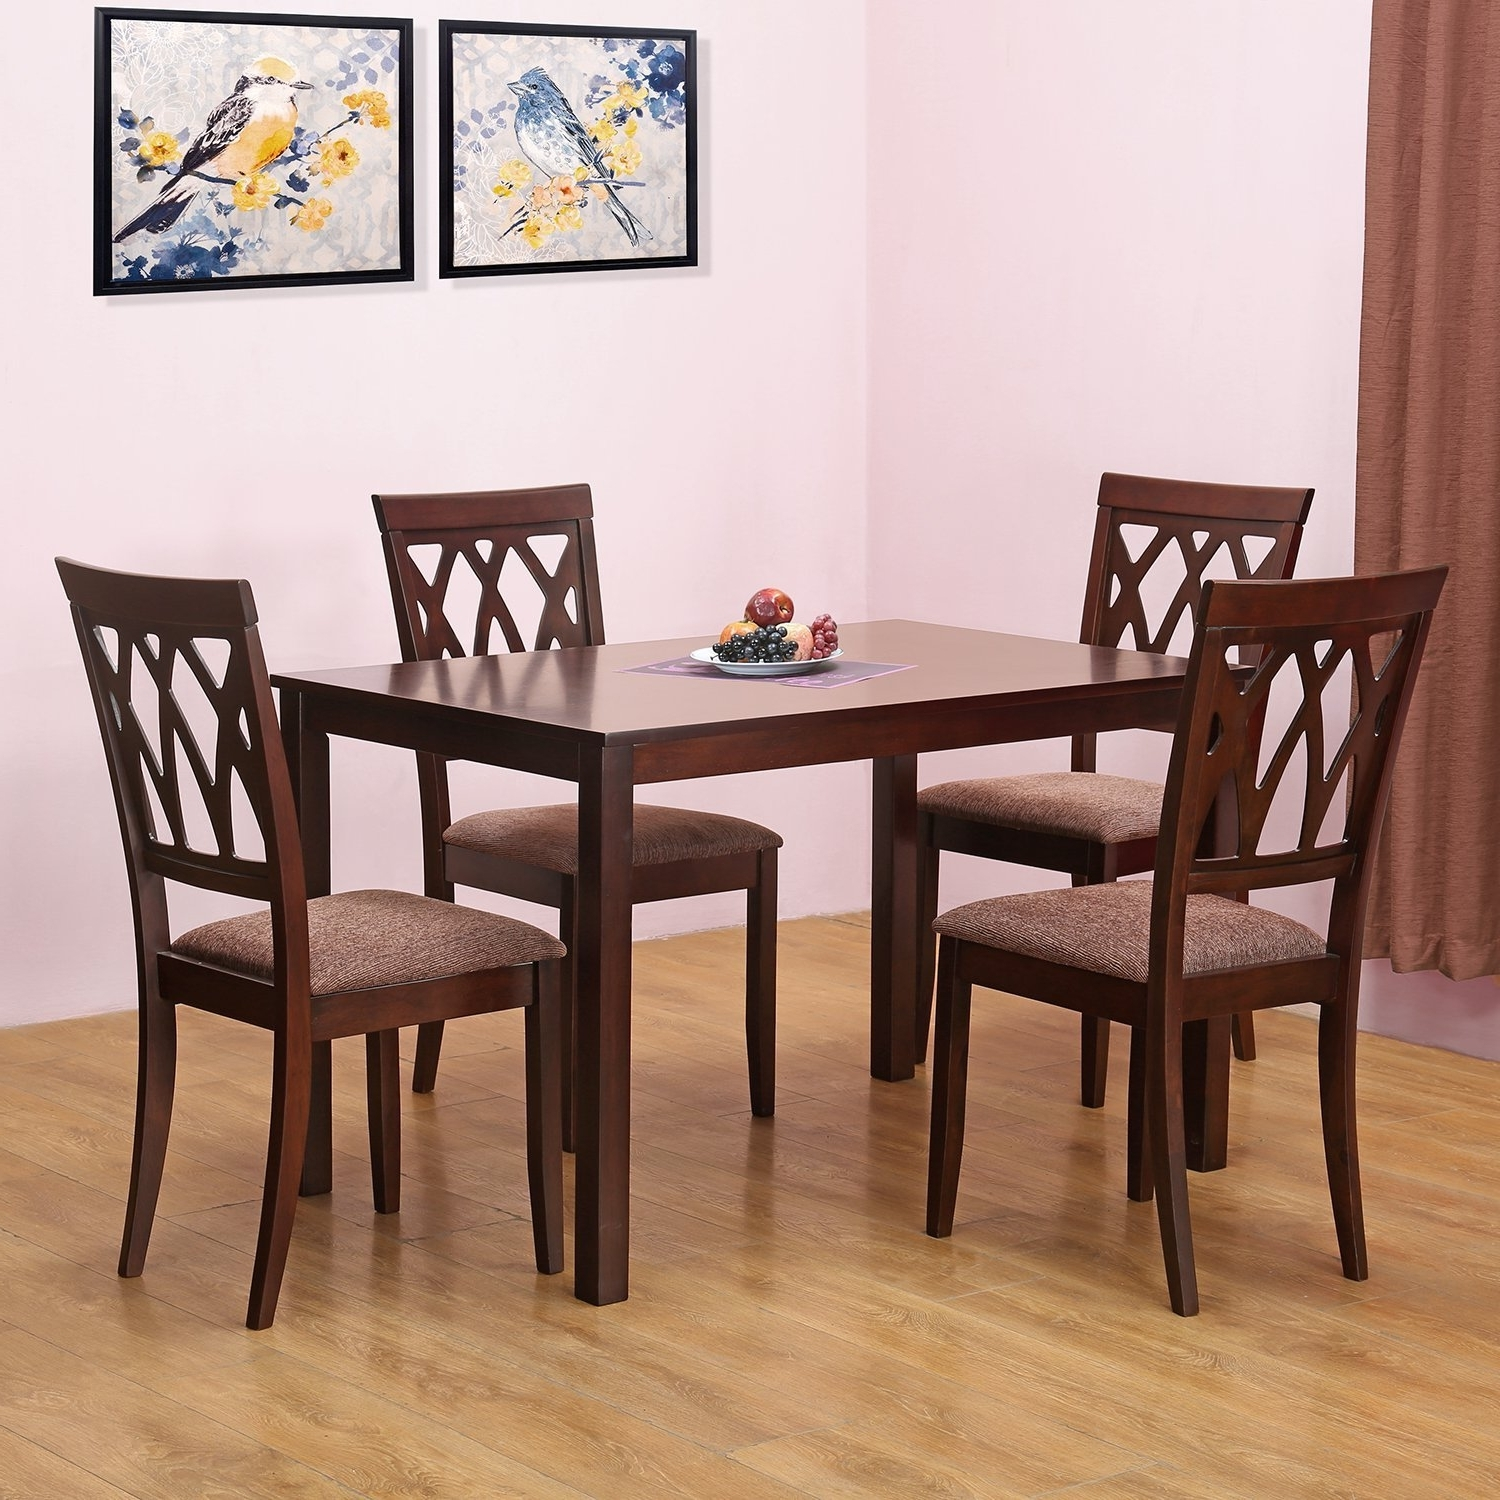 Favorite Cheap Dining Tables Intended For Dining Room Table Prices Cheap Table And Chair # (View 18 of 25)